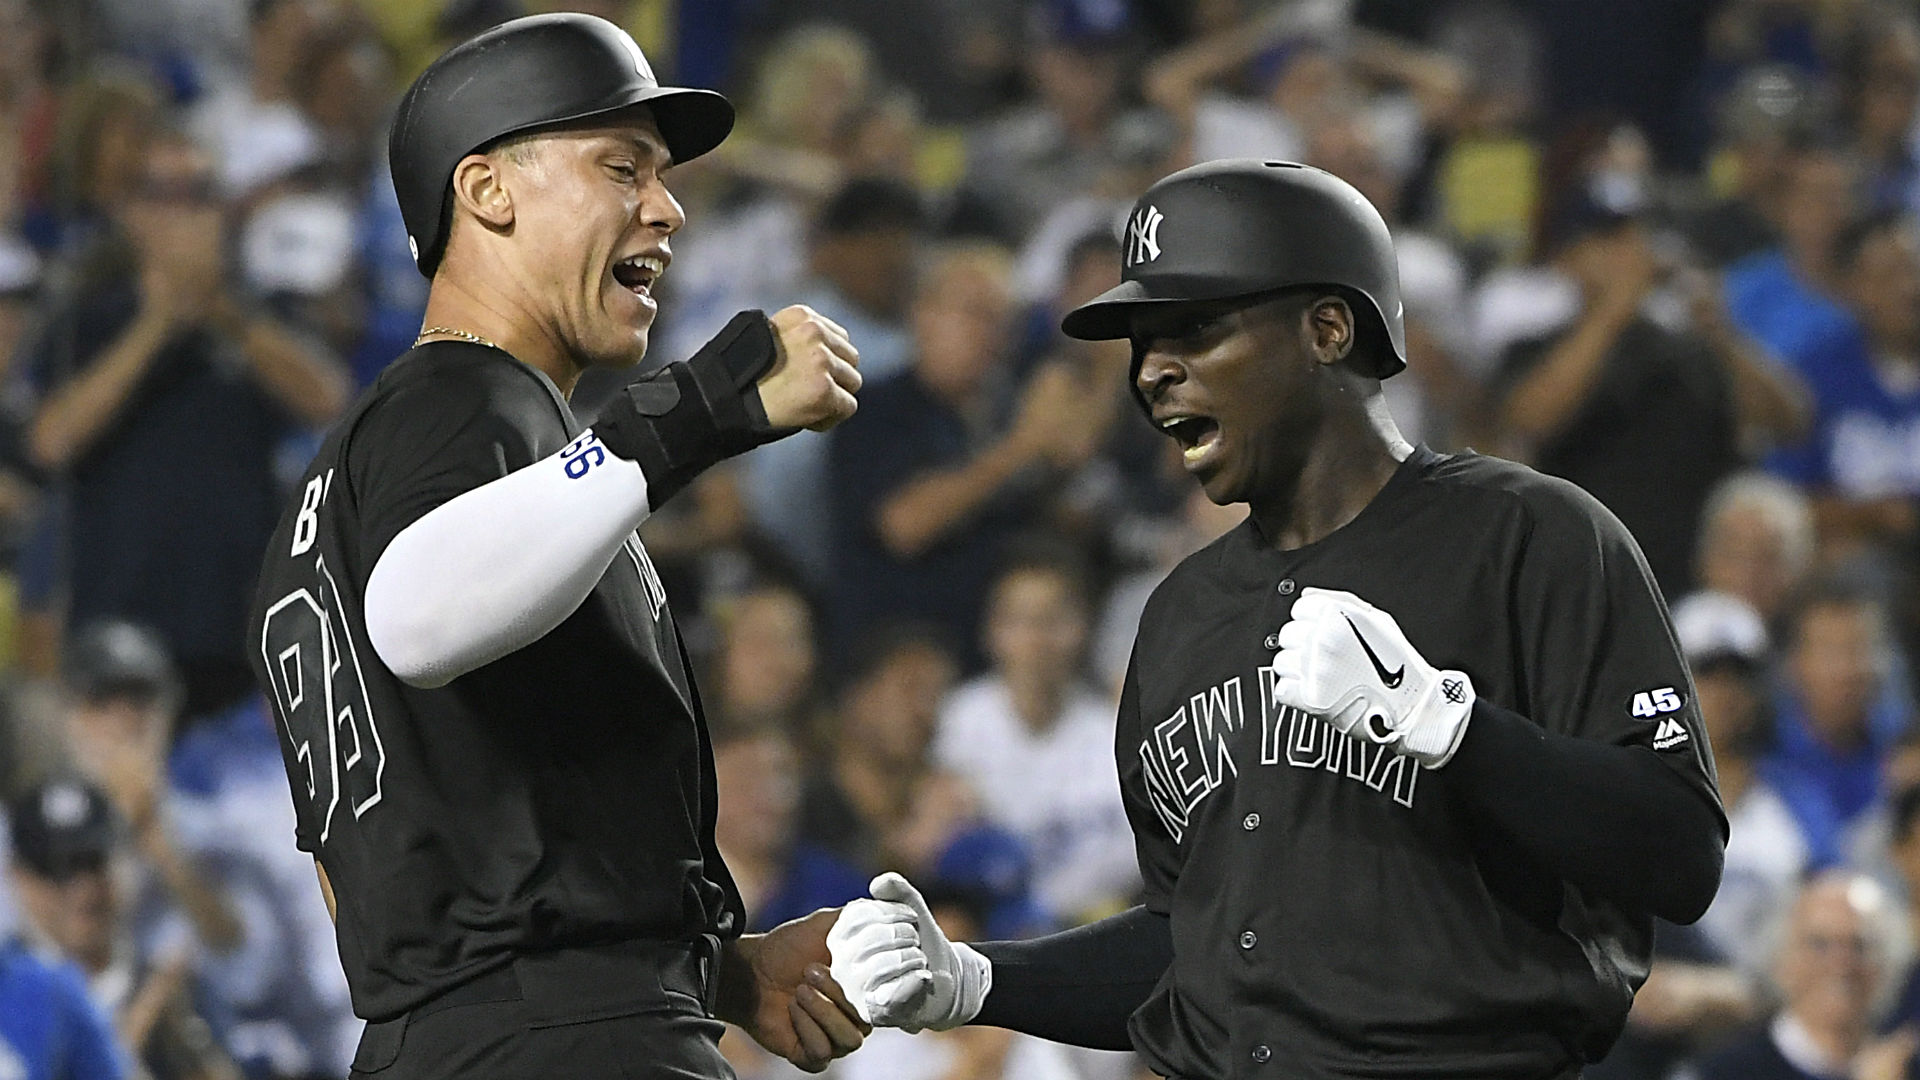 Yankees' power sources vs. Dodgers enjoyed rare night together